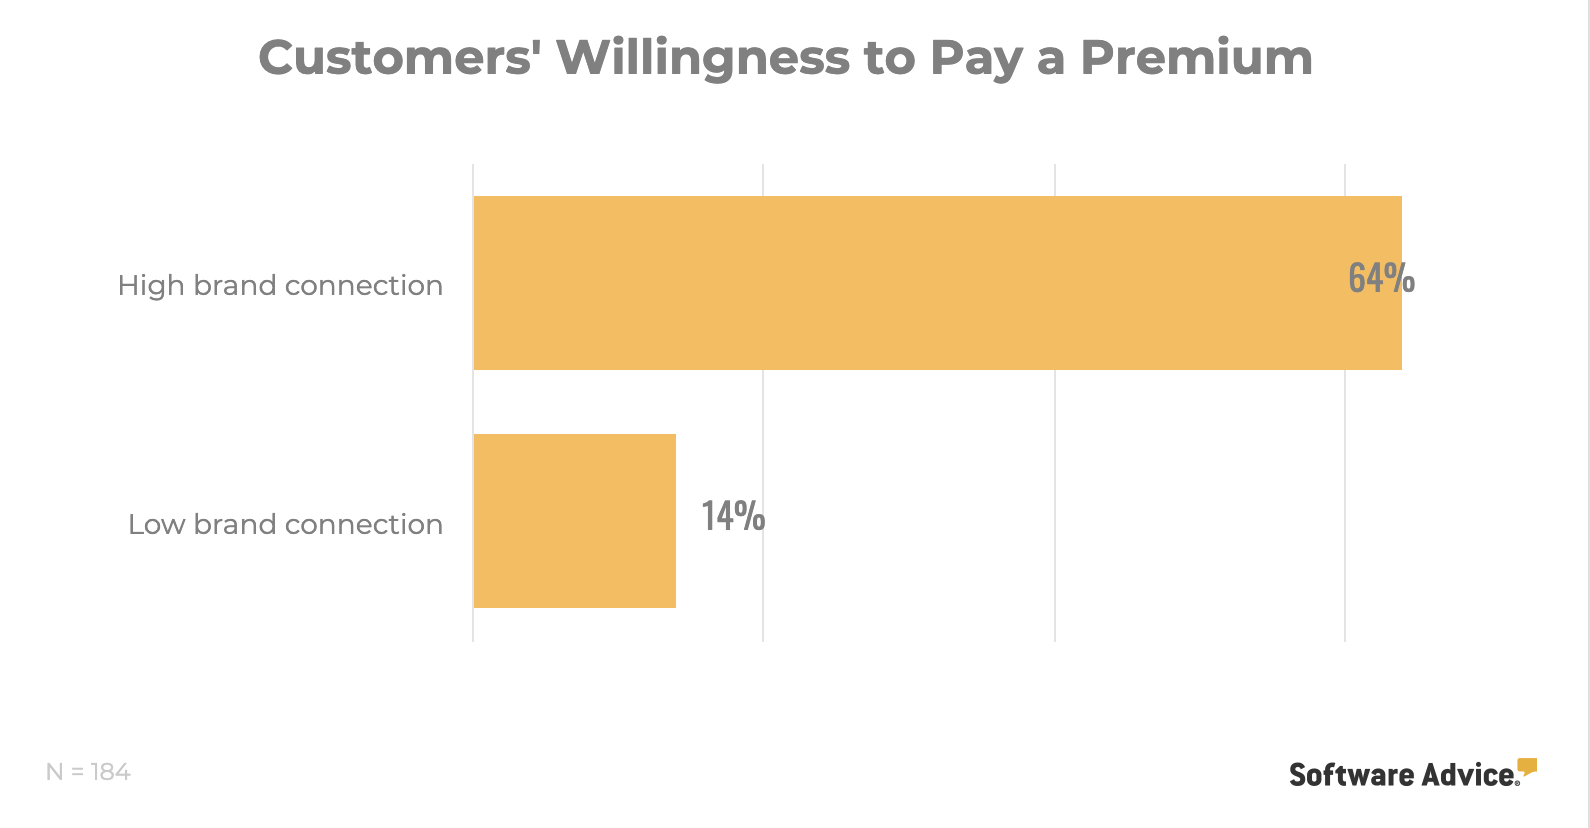 Customers willingness to pay a premium